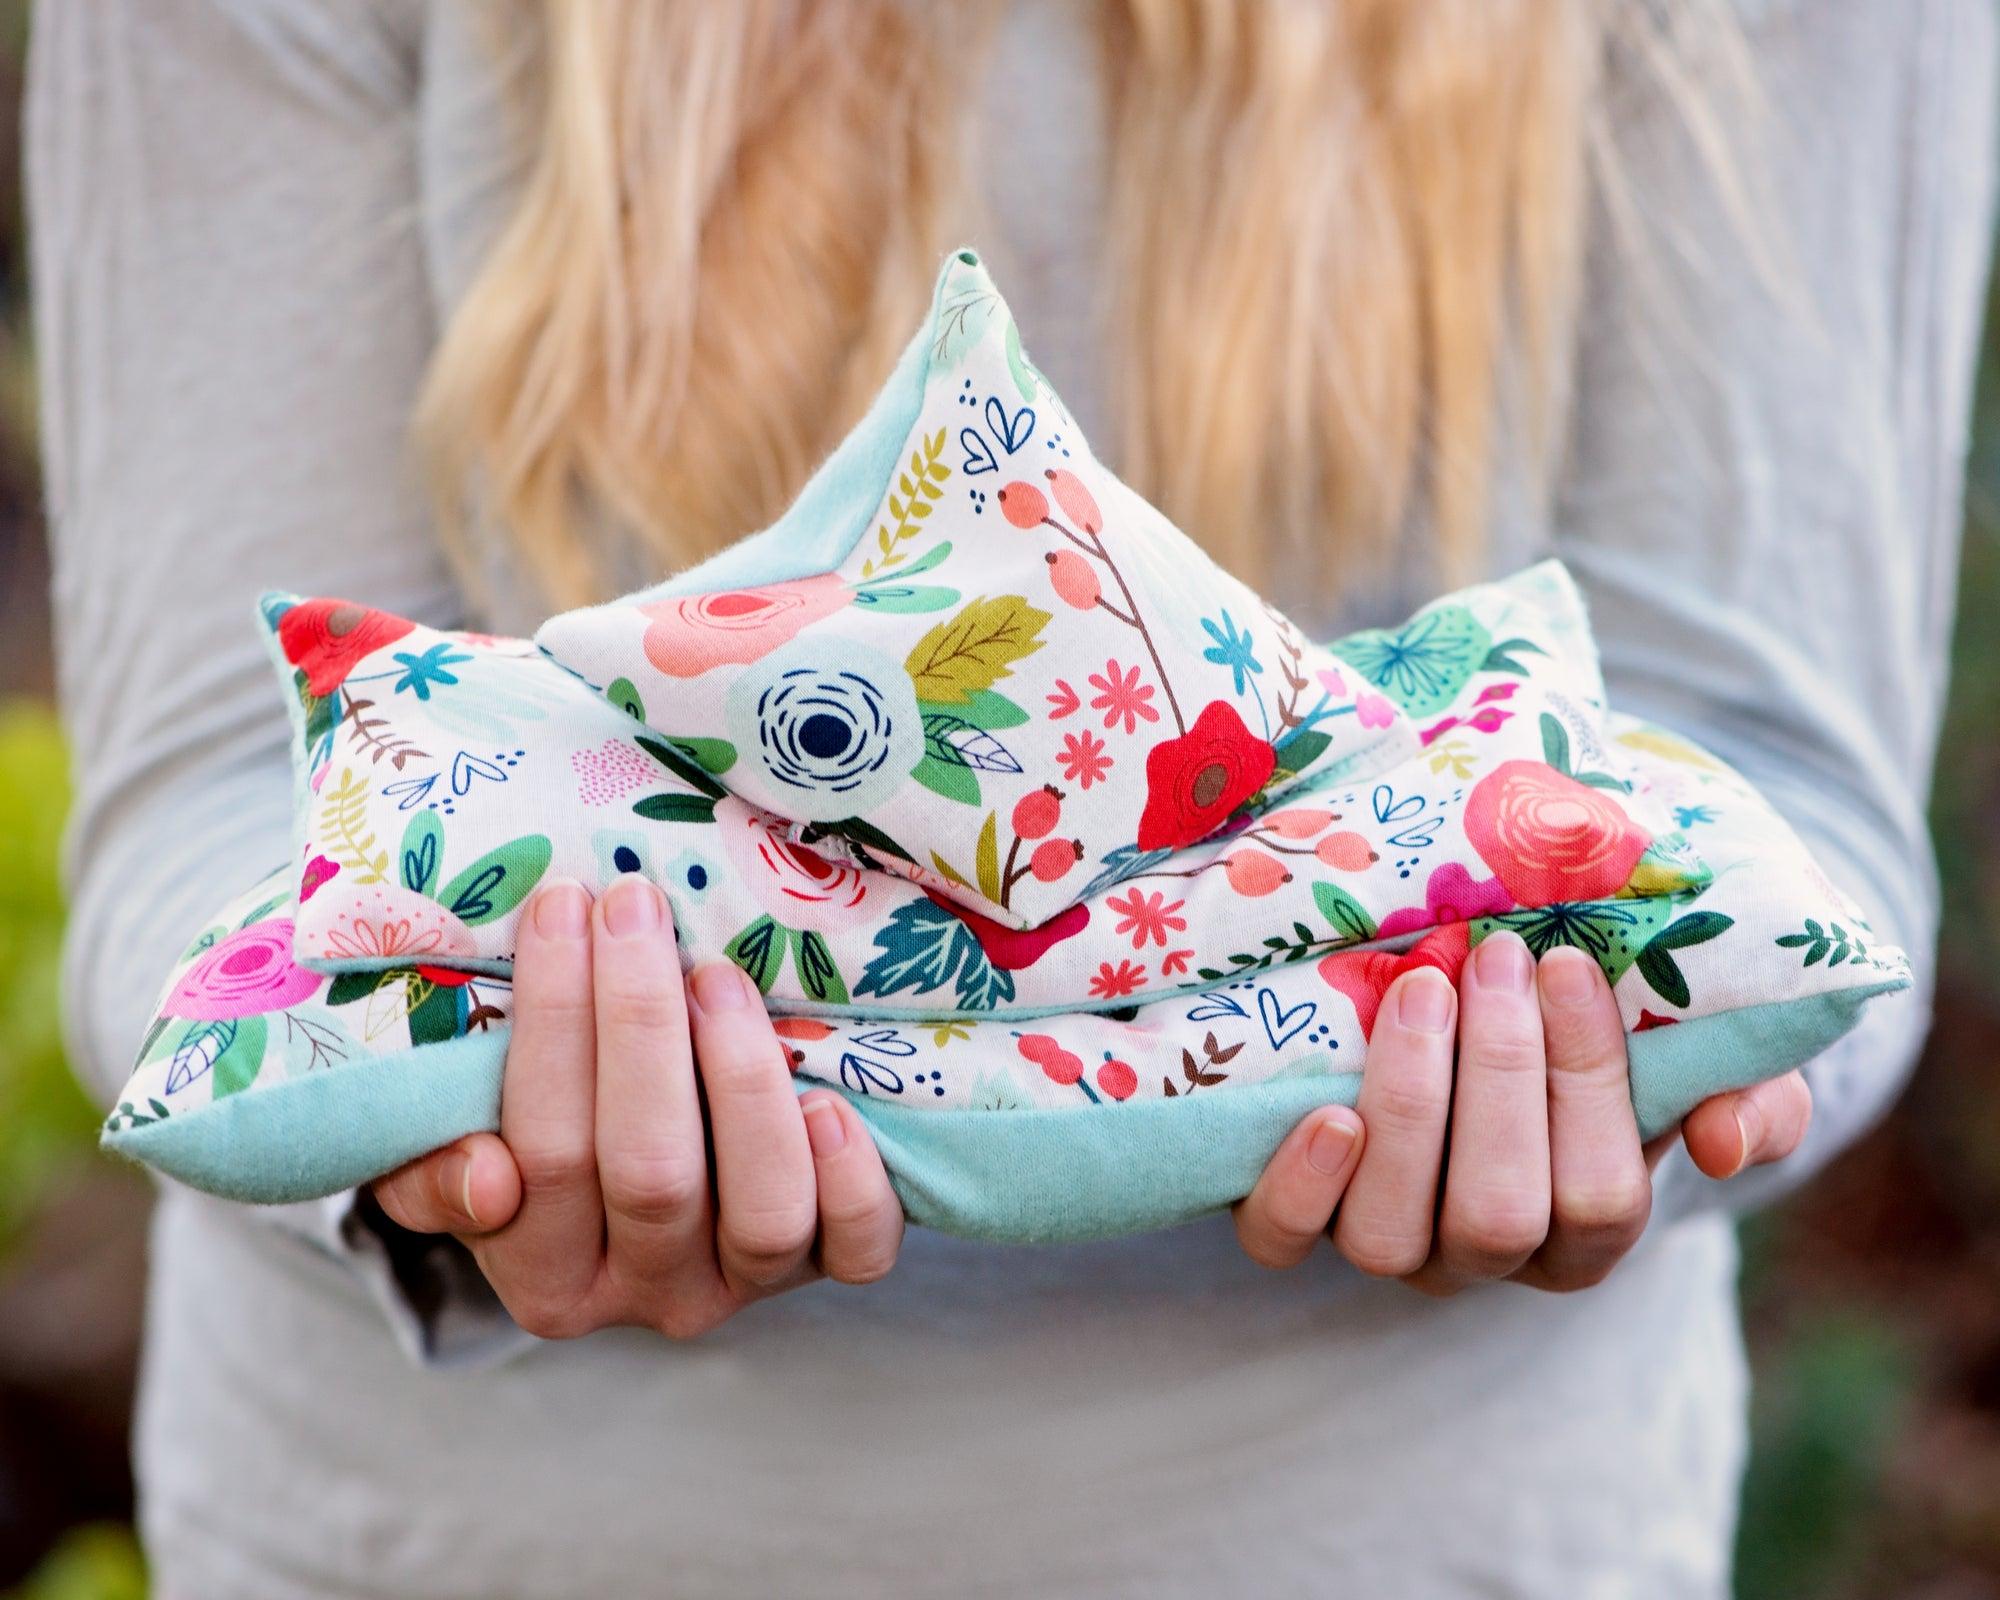 Girl holding microwave heating pads and or ice packs in her hands.